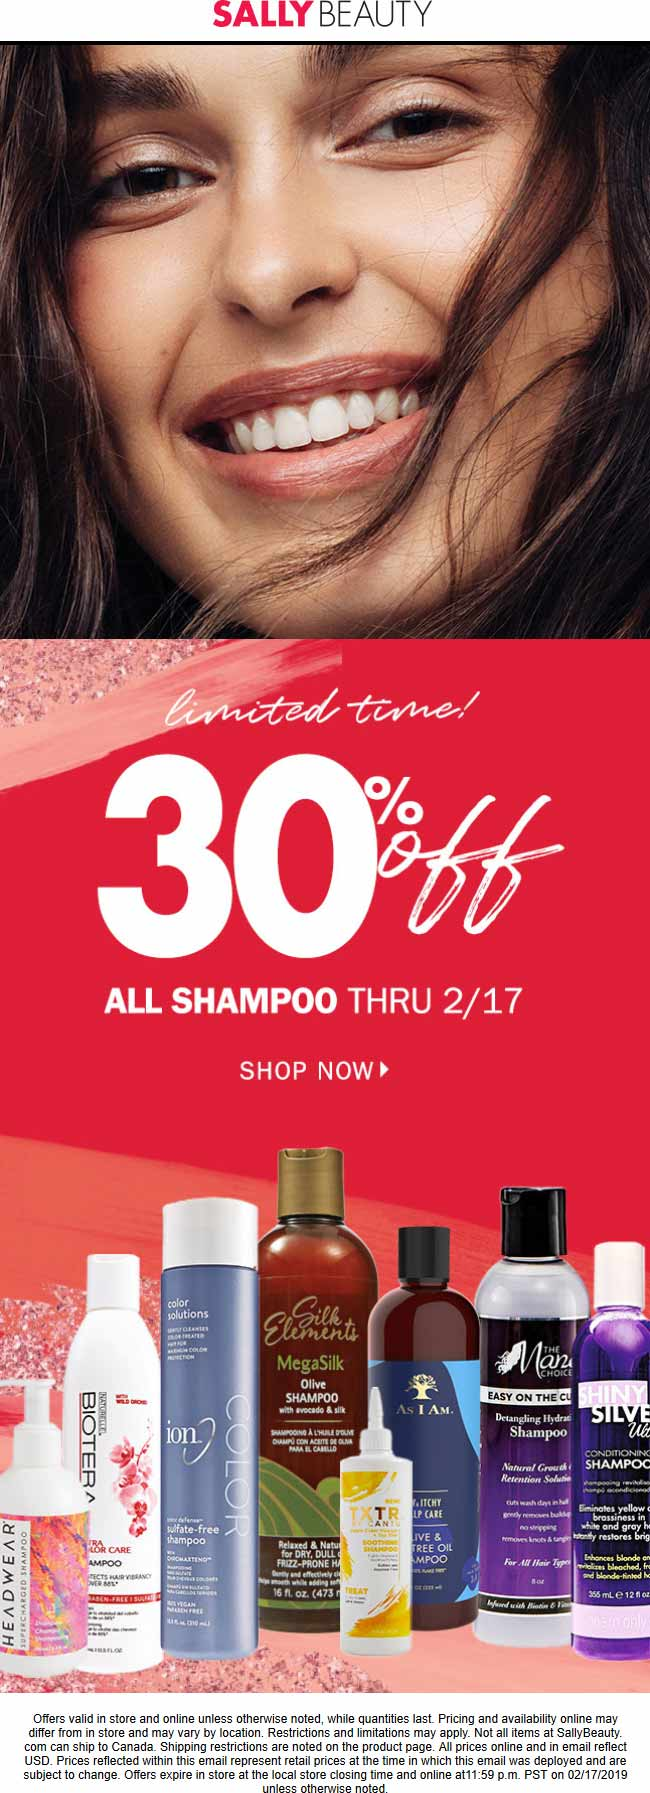 Sally Beauty Coupon August 2019 30% off all shampoo today at Sally Beauty, ditto online